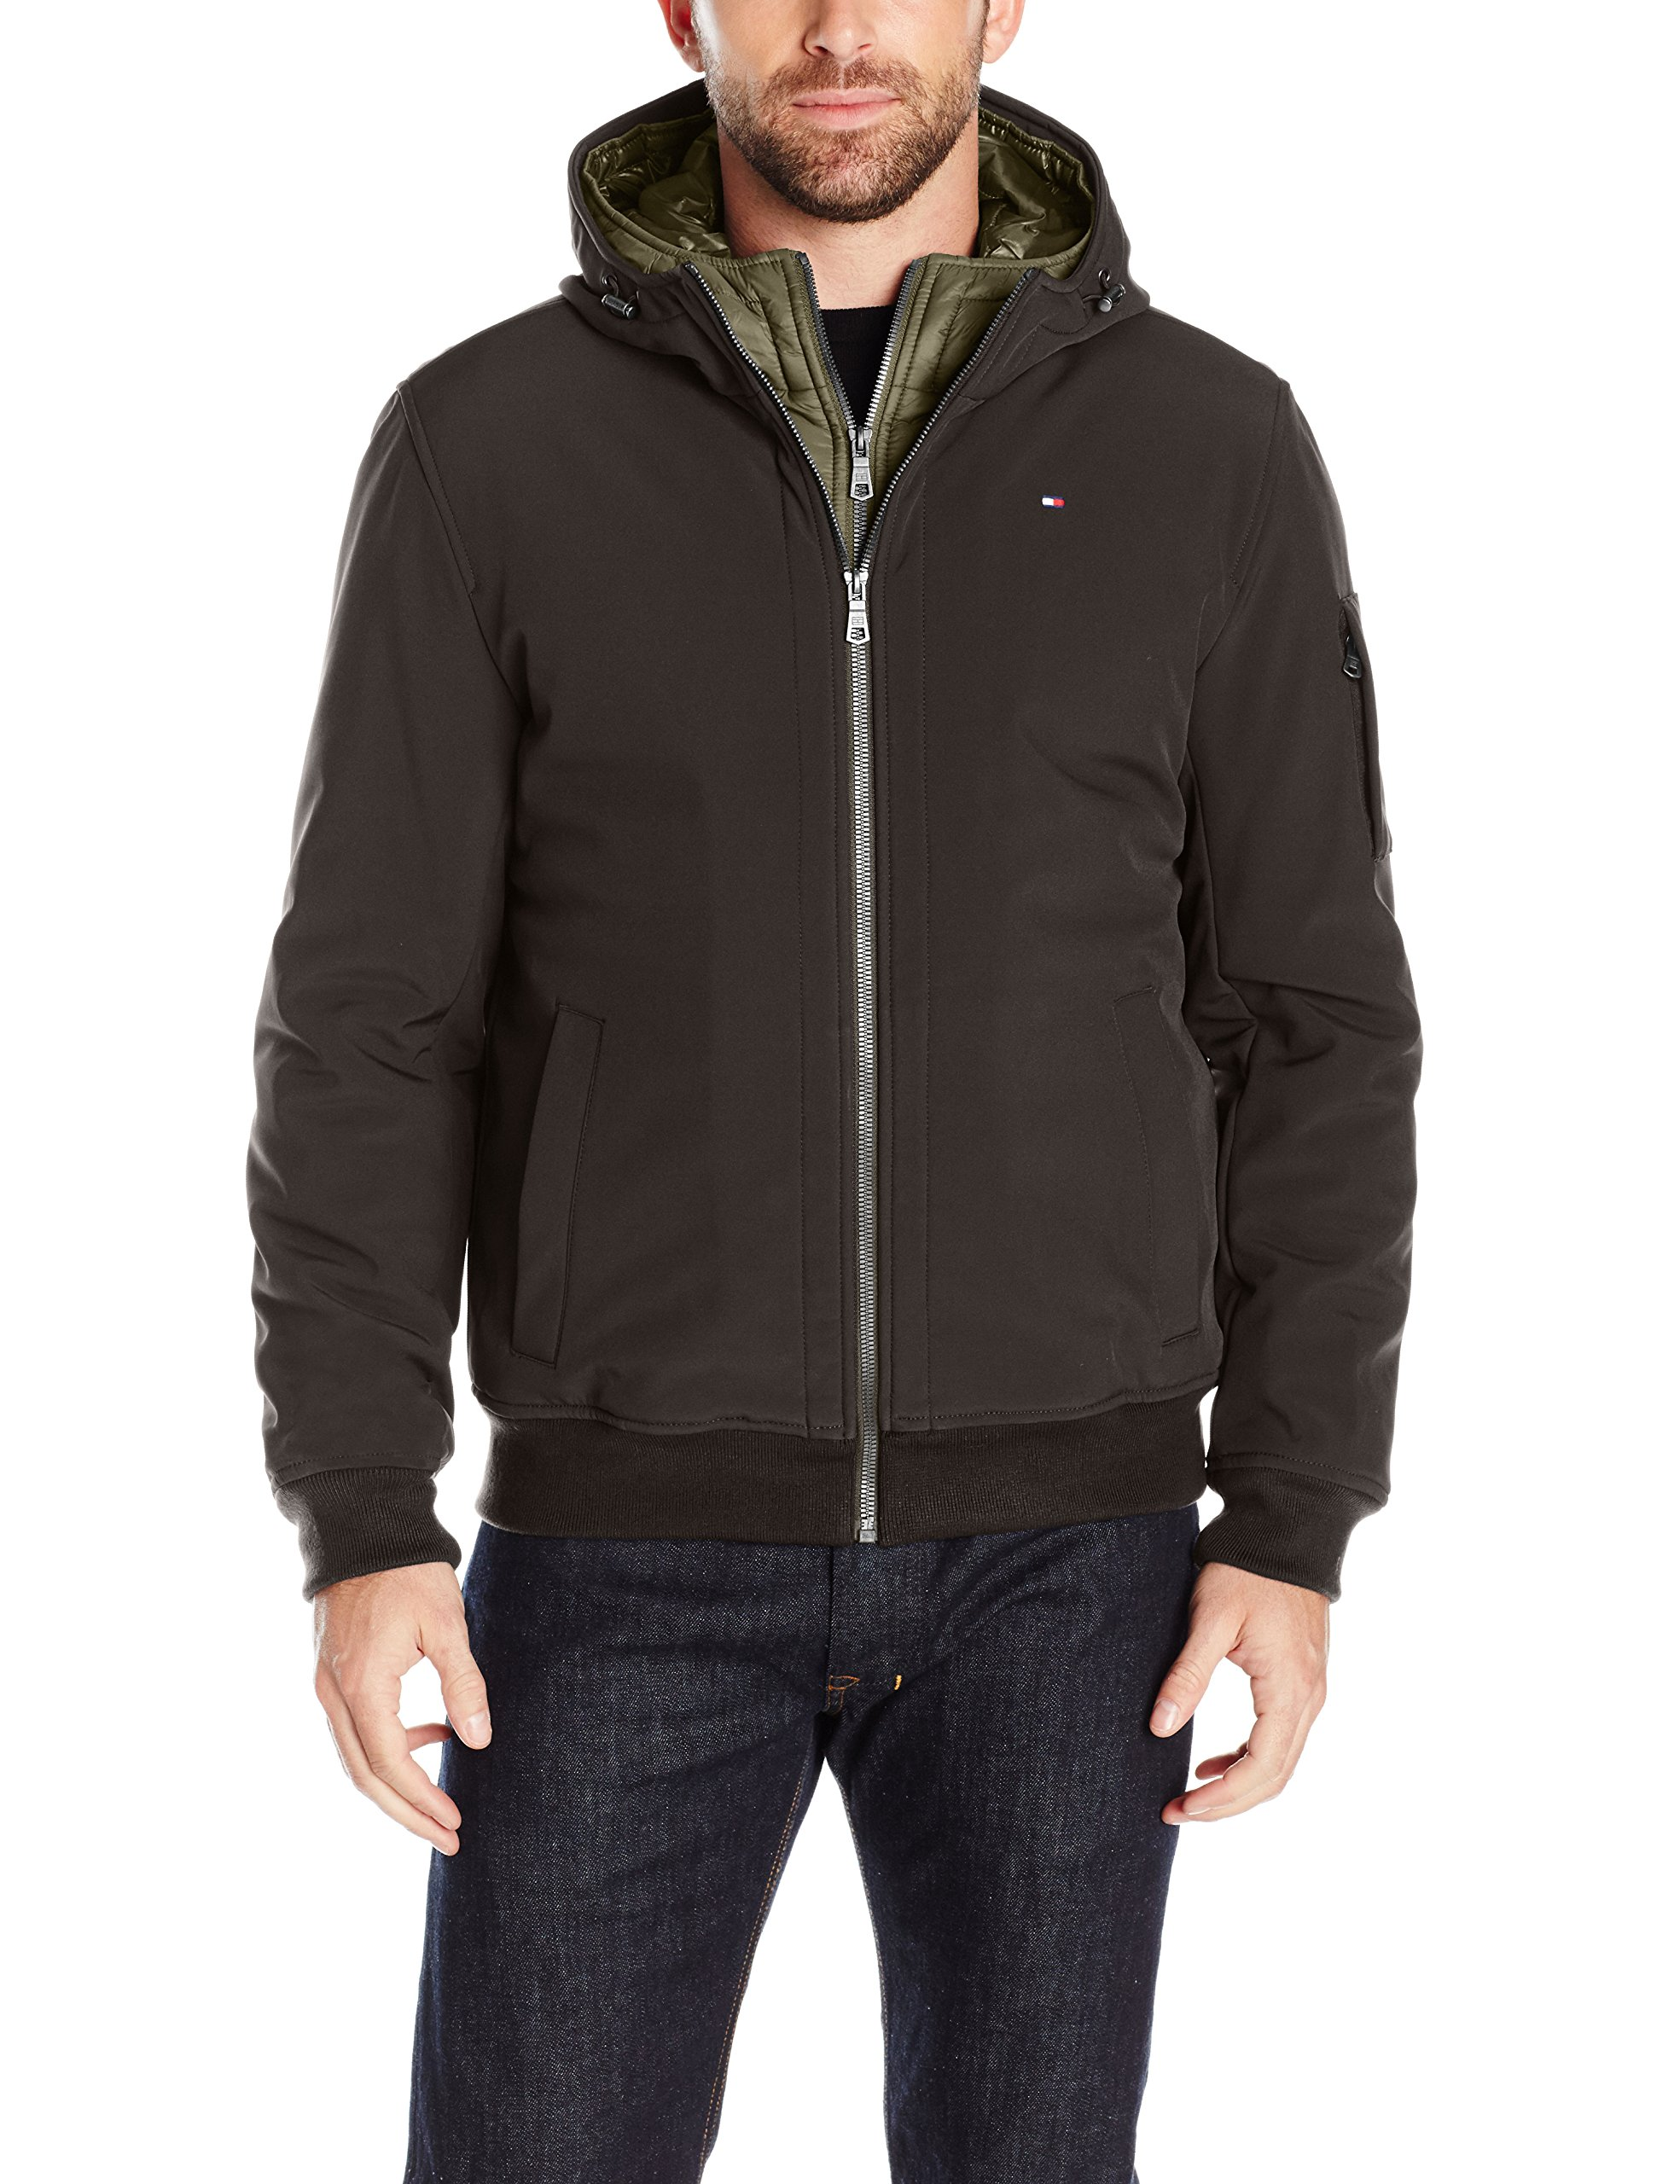 Tommy Hilfiger Men's Soft Shell Fashion Bomber with Contrast Bib and Hood, Black/Olive Bib, L